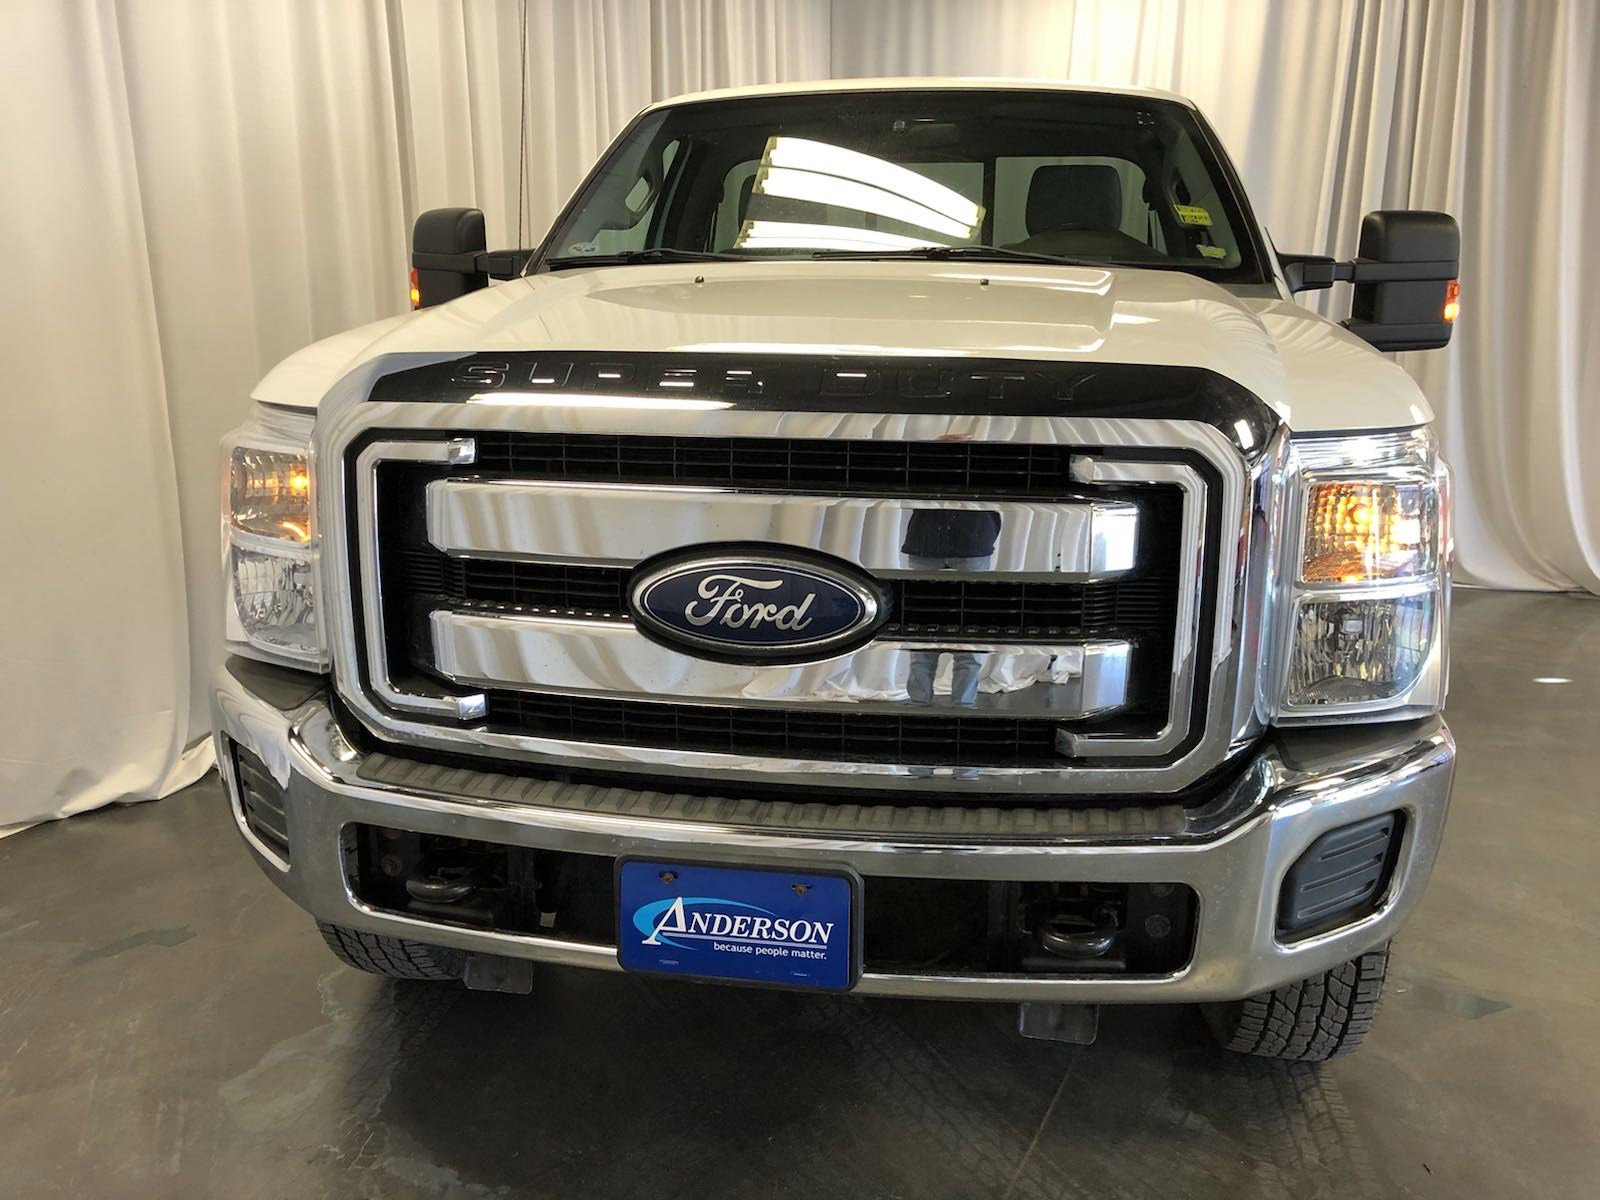 Used 2012 Ford Super Duty F-250 SRW XLT Regular Cab Pickup for sale in St Joseph MO